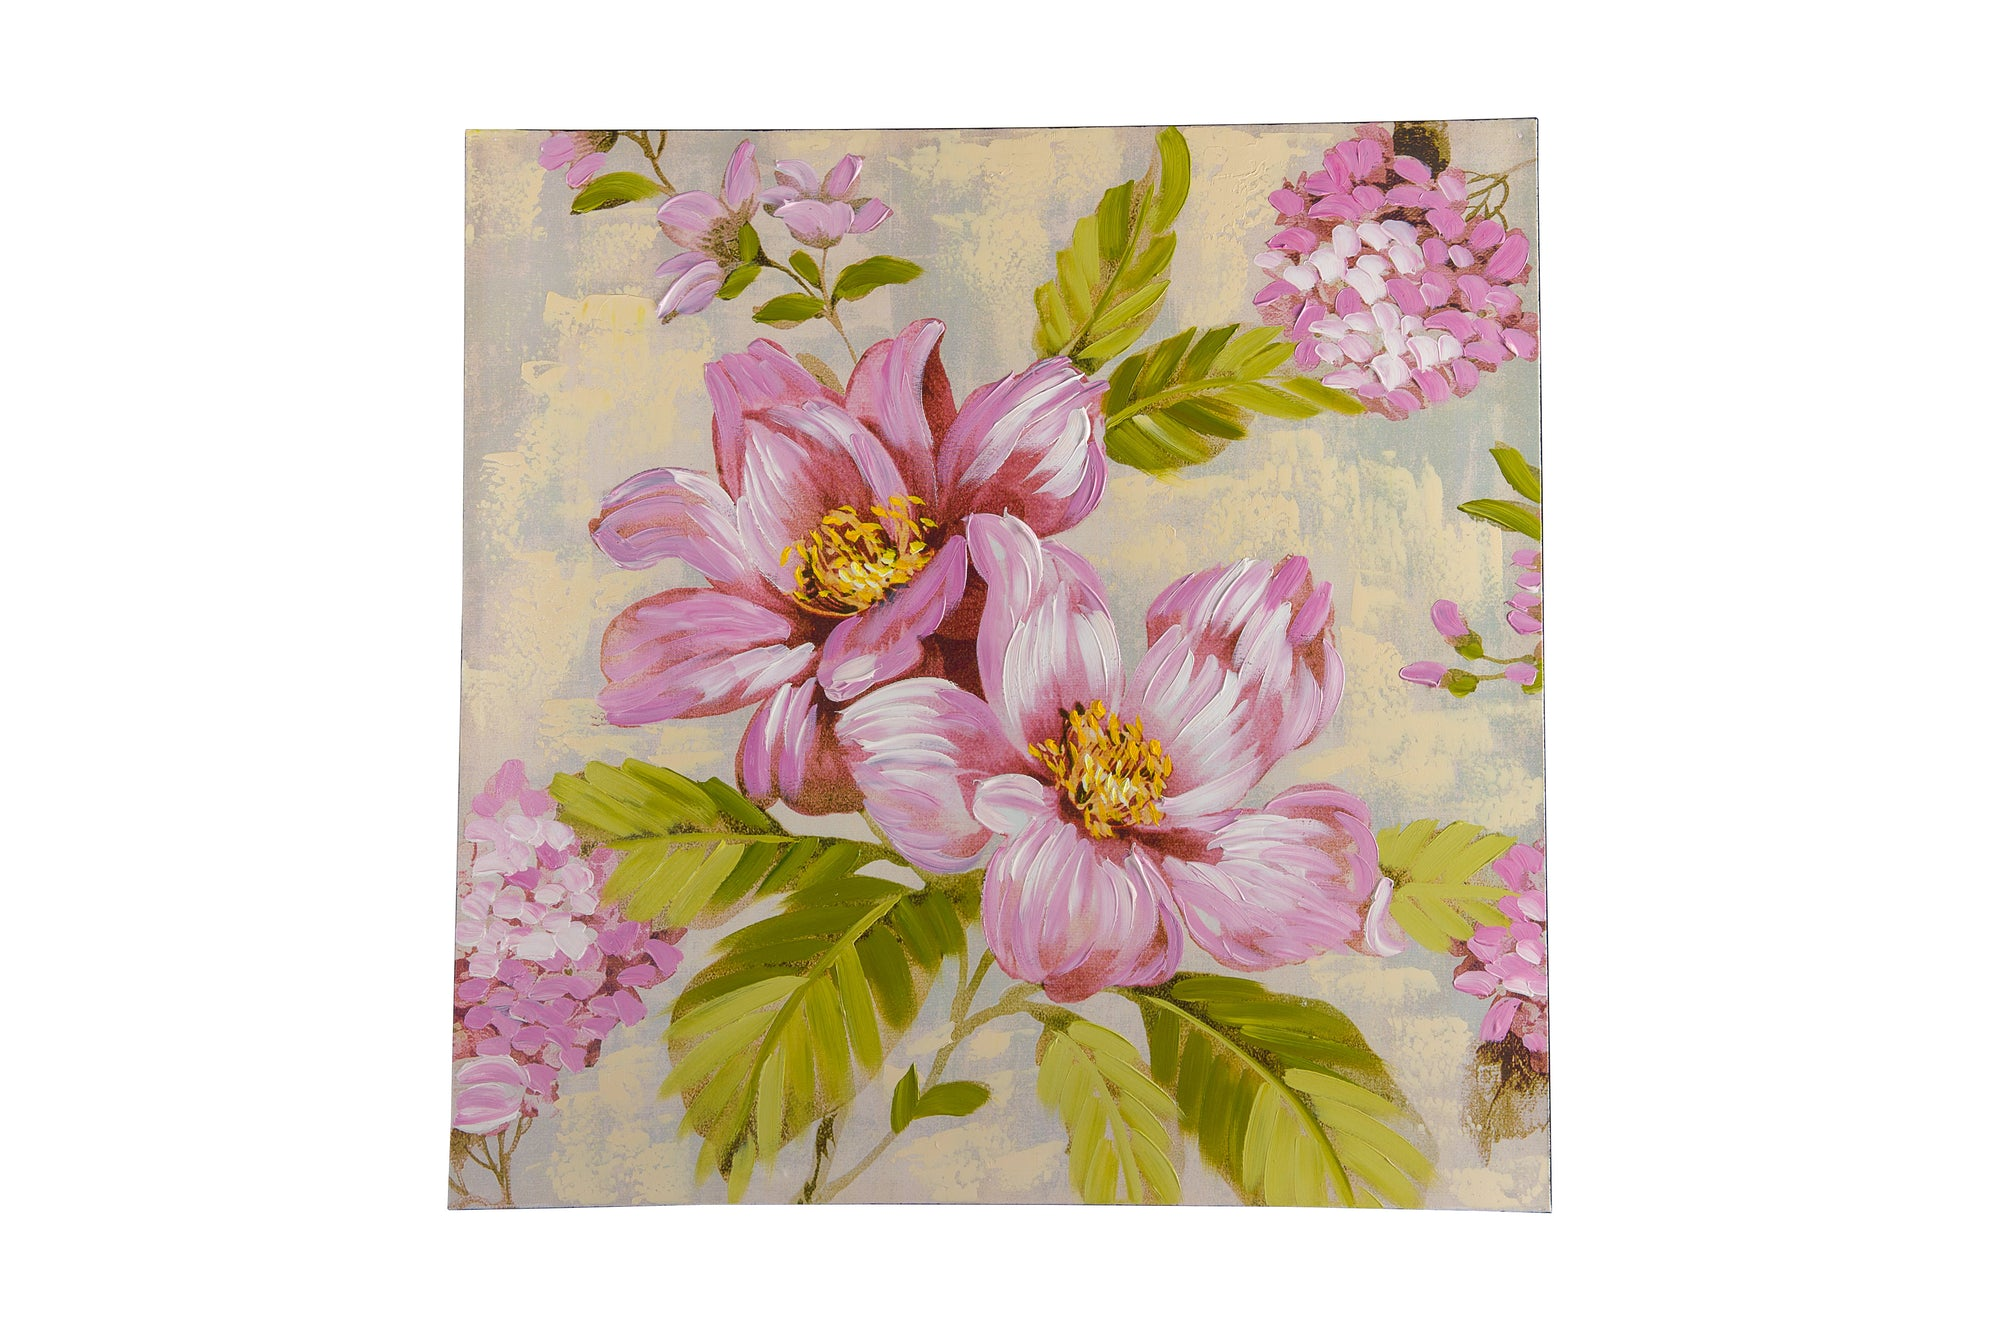 vintage floral soft pink hand painted wall art on canvas - Fervor + Hue